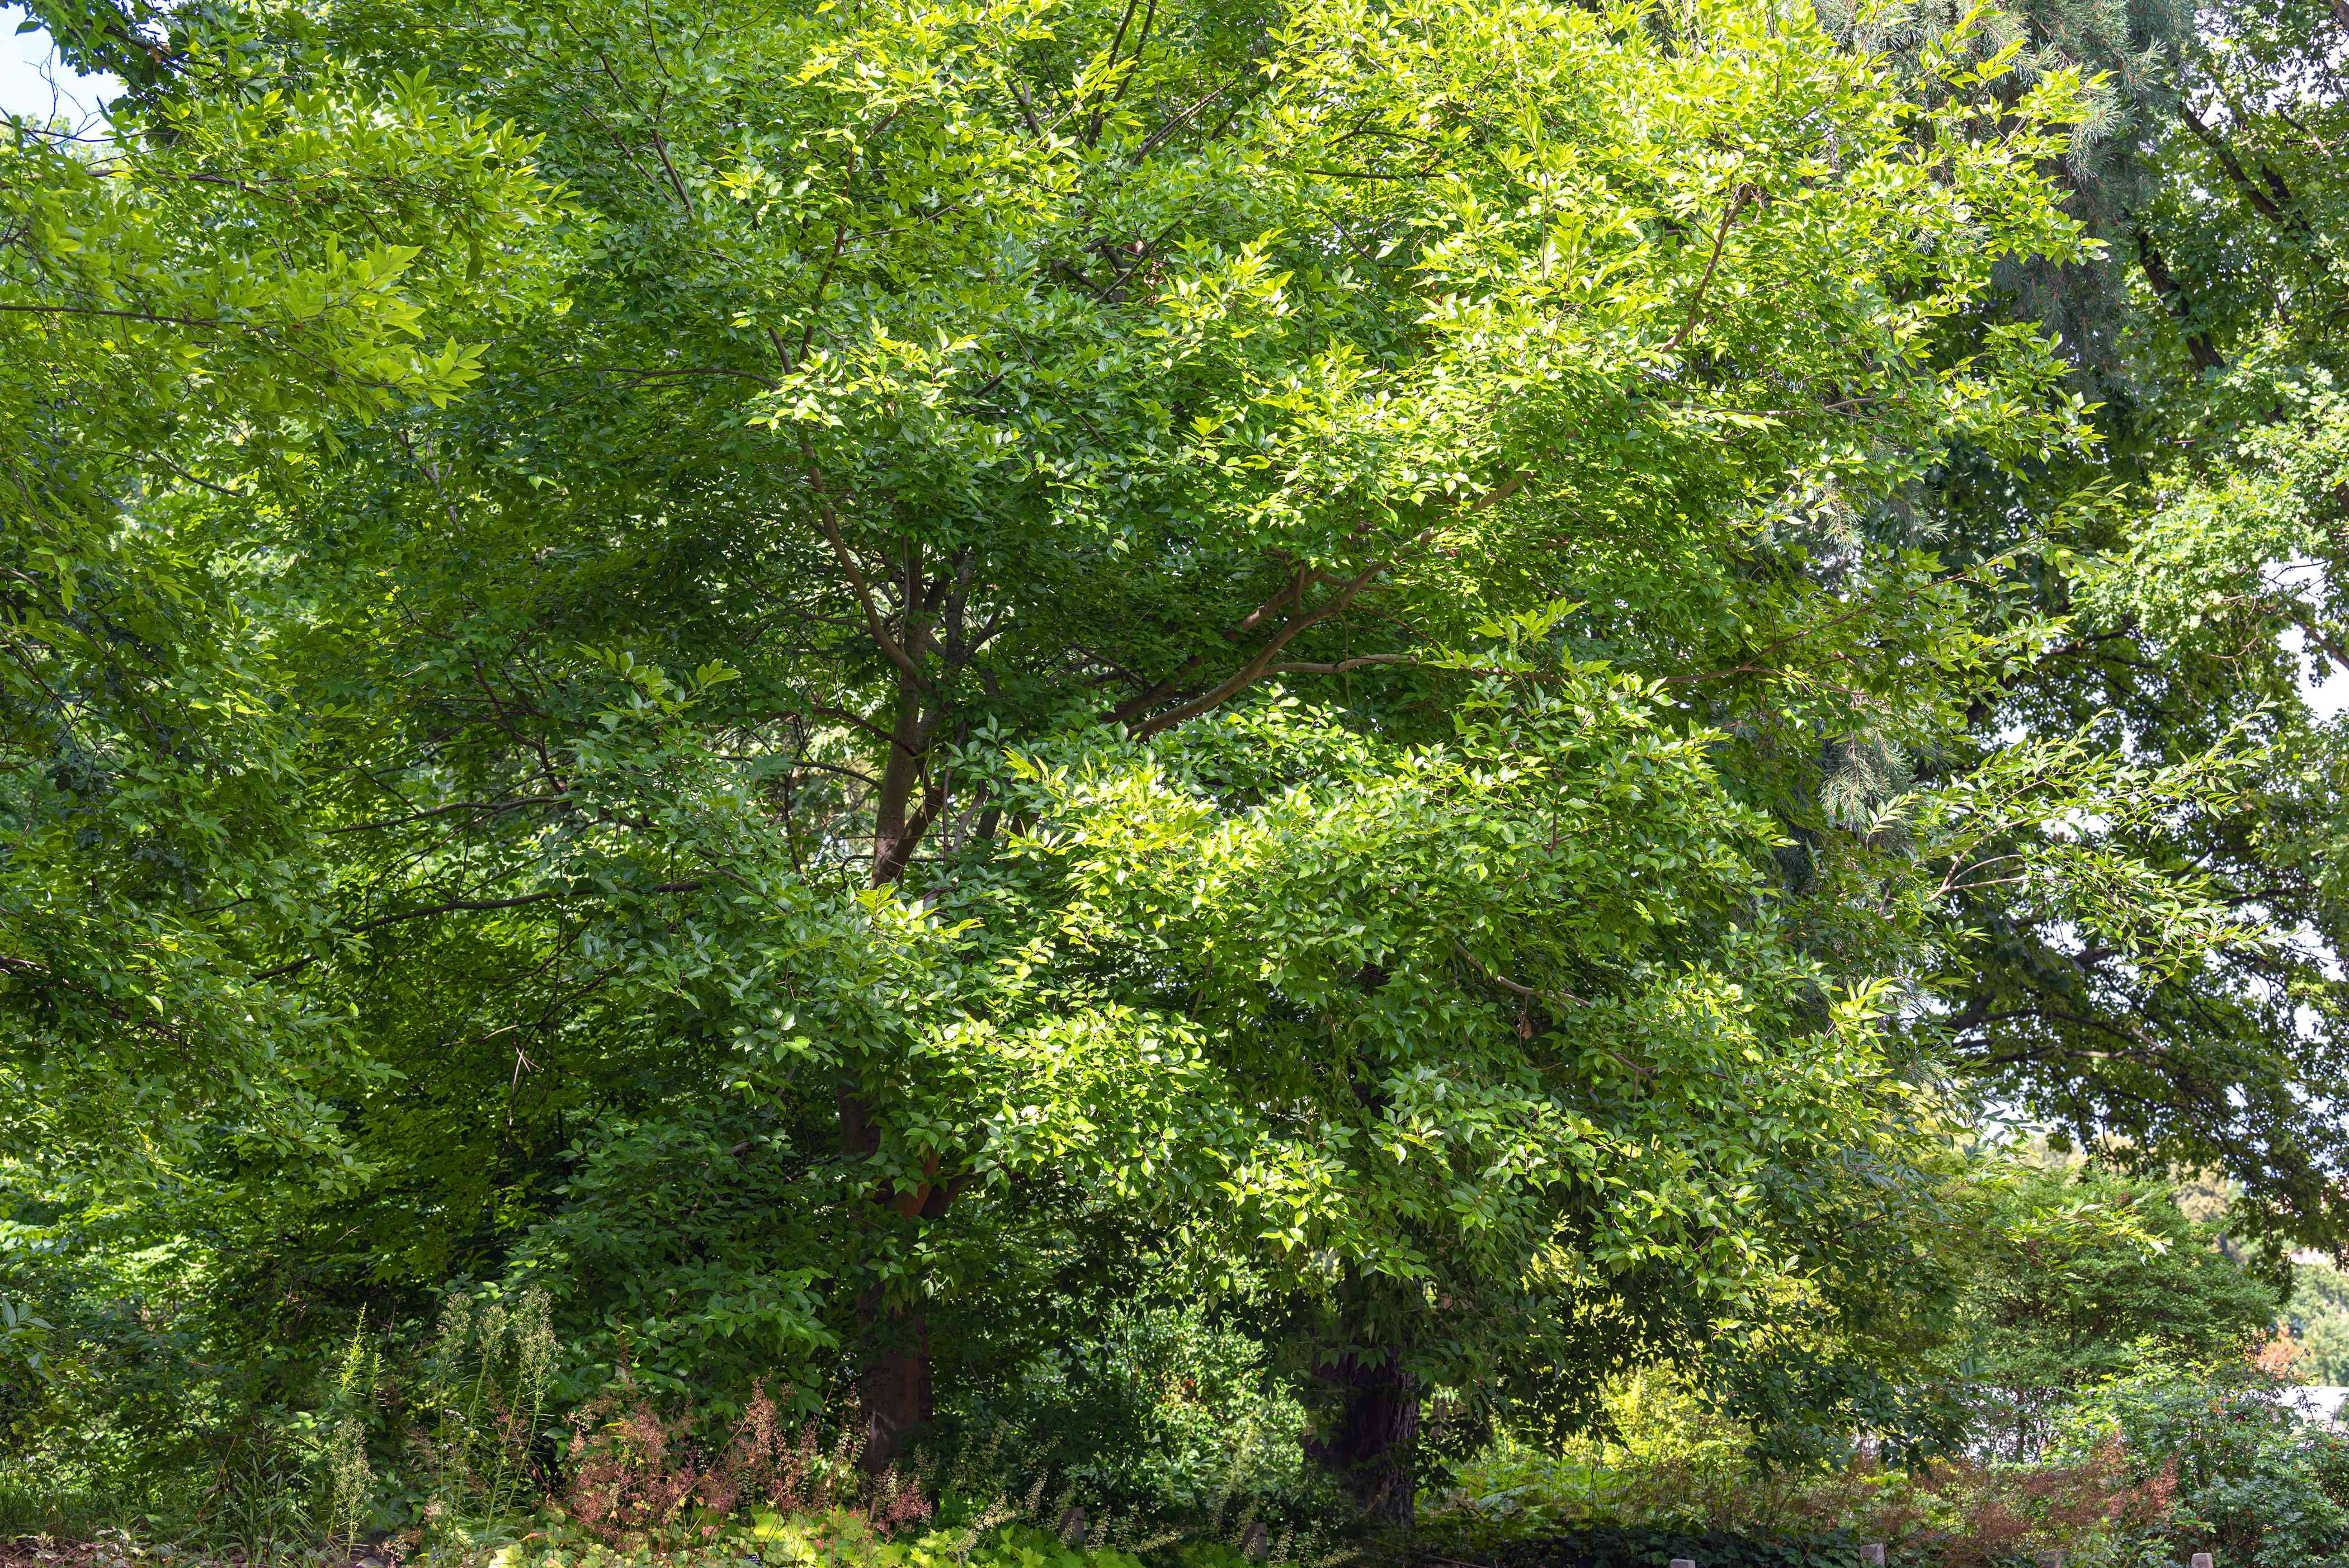 Netleaf hackberry tree with bright green leaves in wooden area